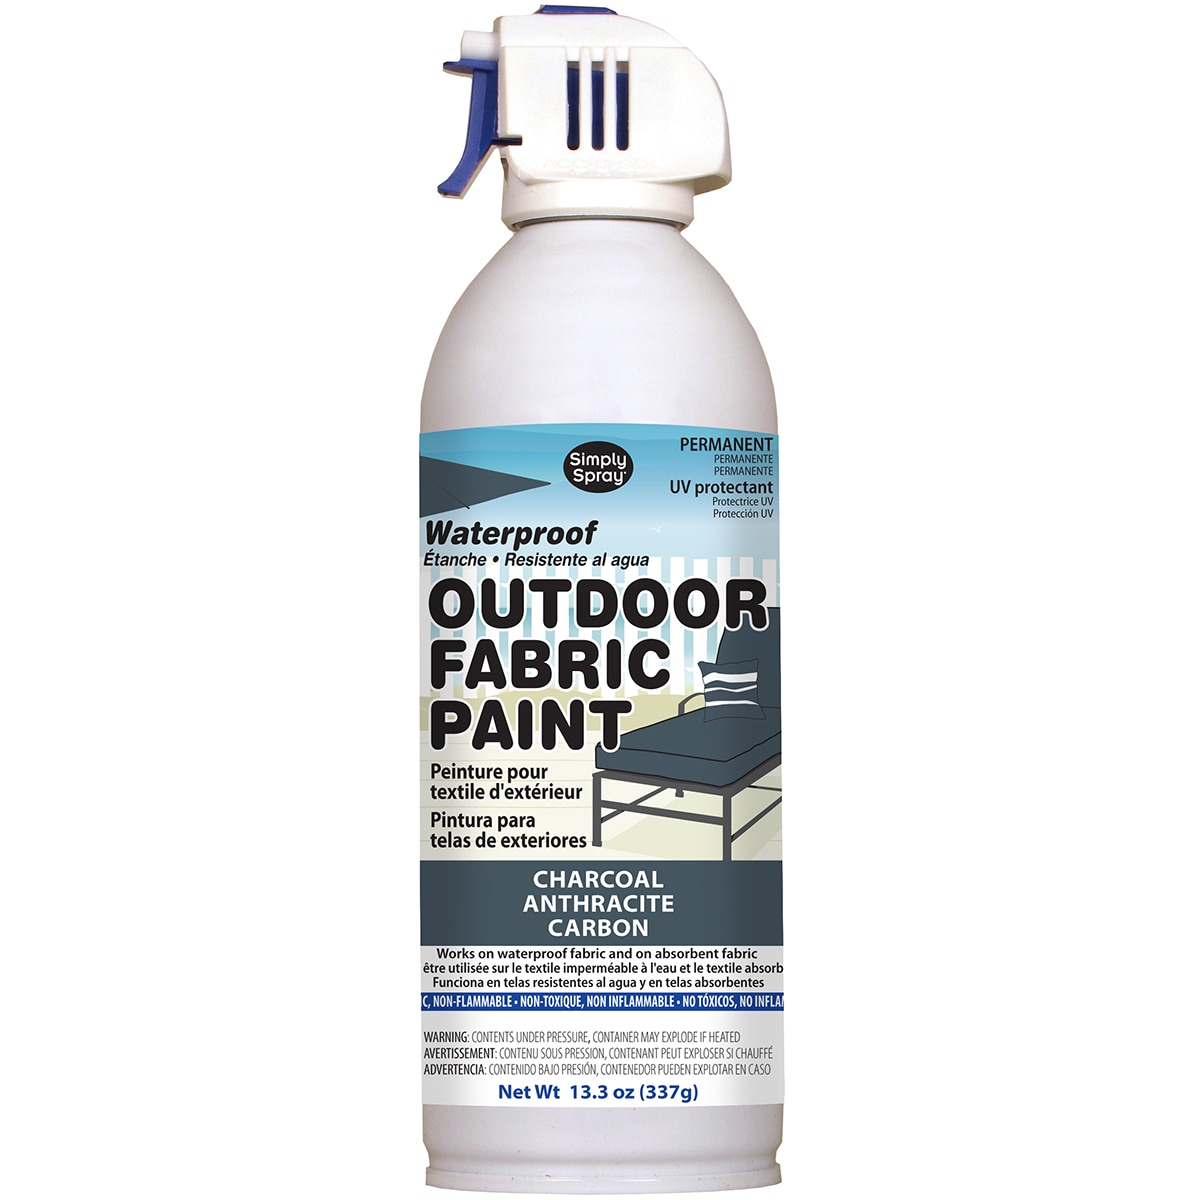 Simply Spray Upholstery Fabric Paint Reviews